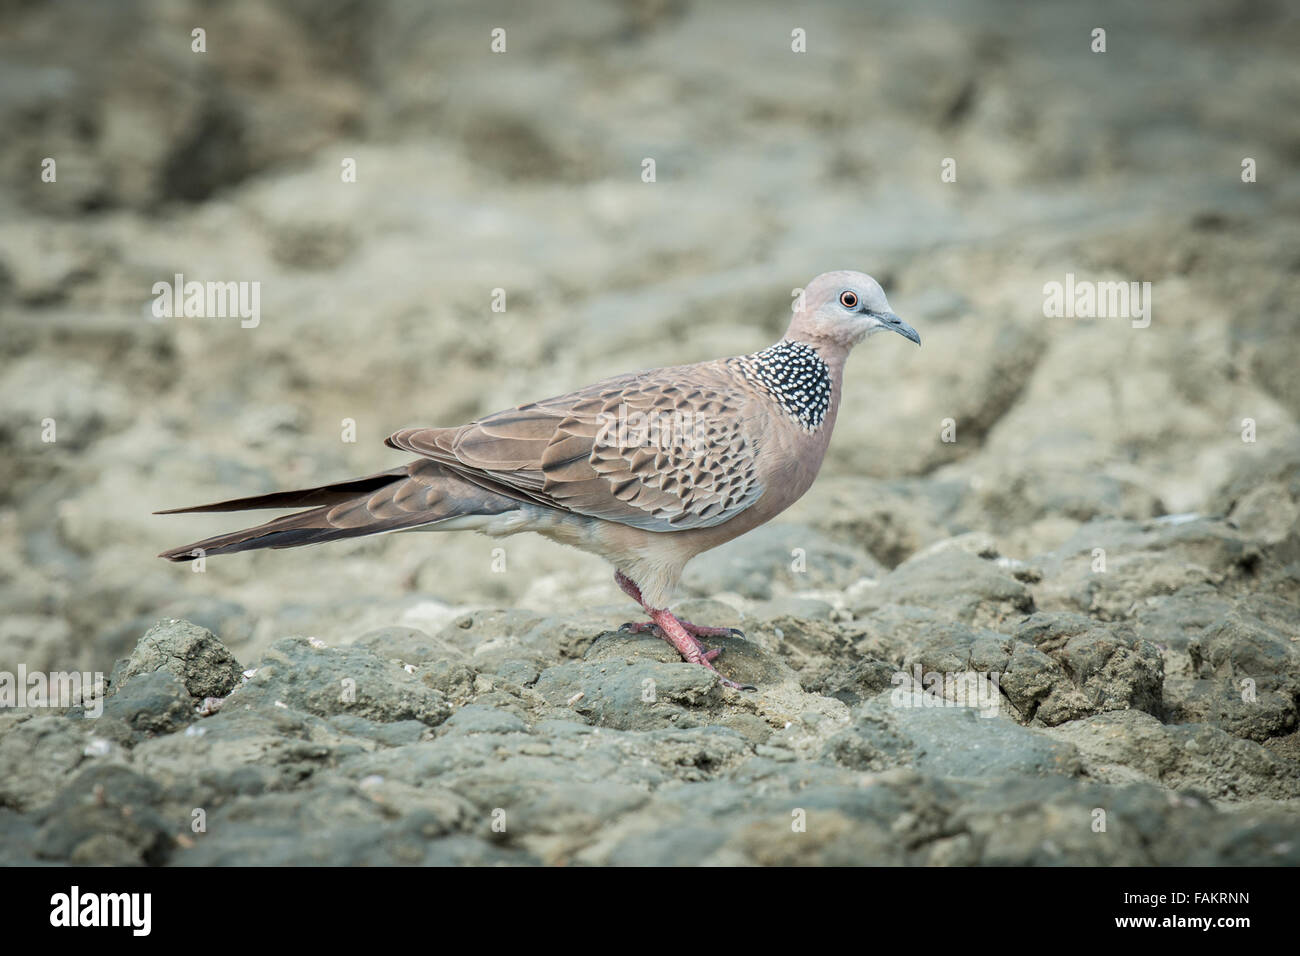 The spotted dove (Spilopelia chinensis) is a small and somewhat long-tailed pigeon - Stock Image